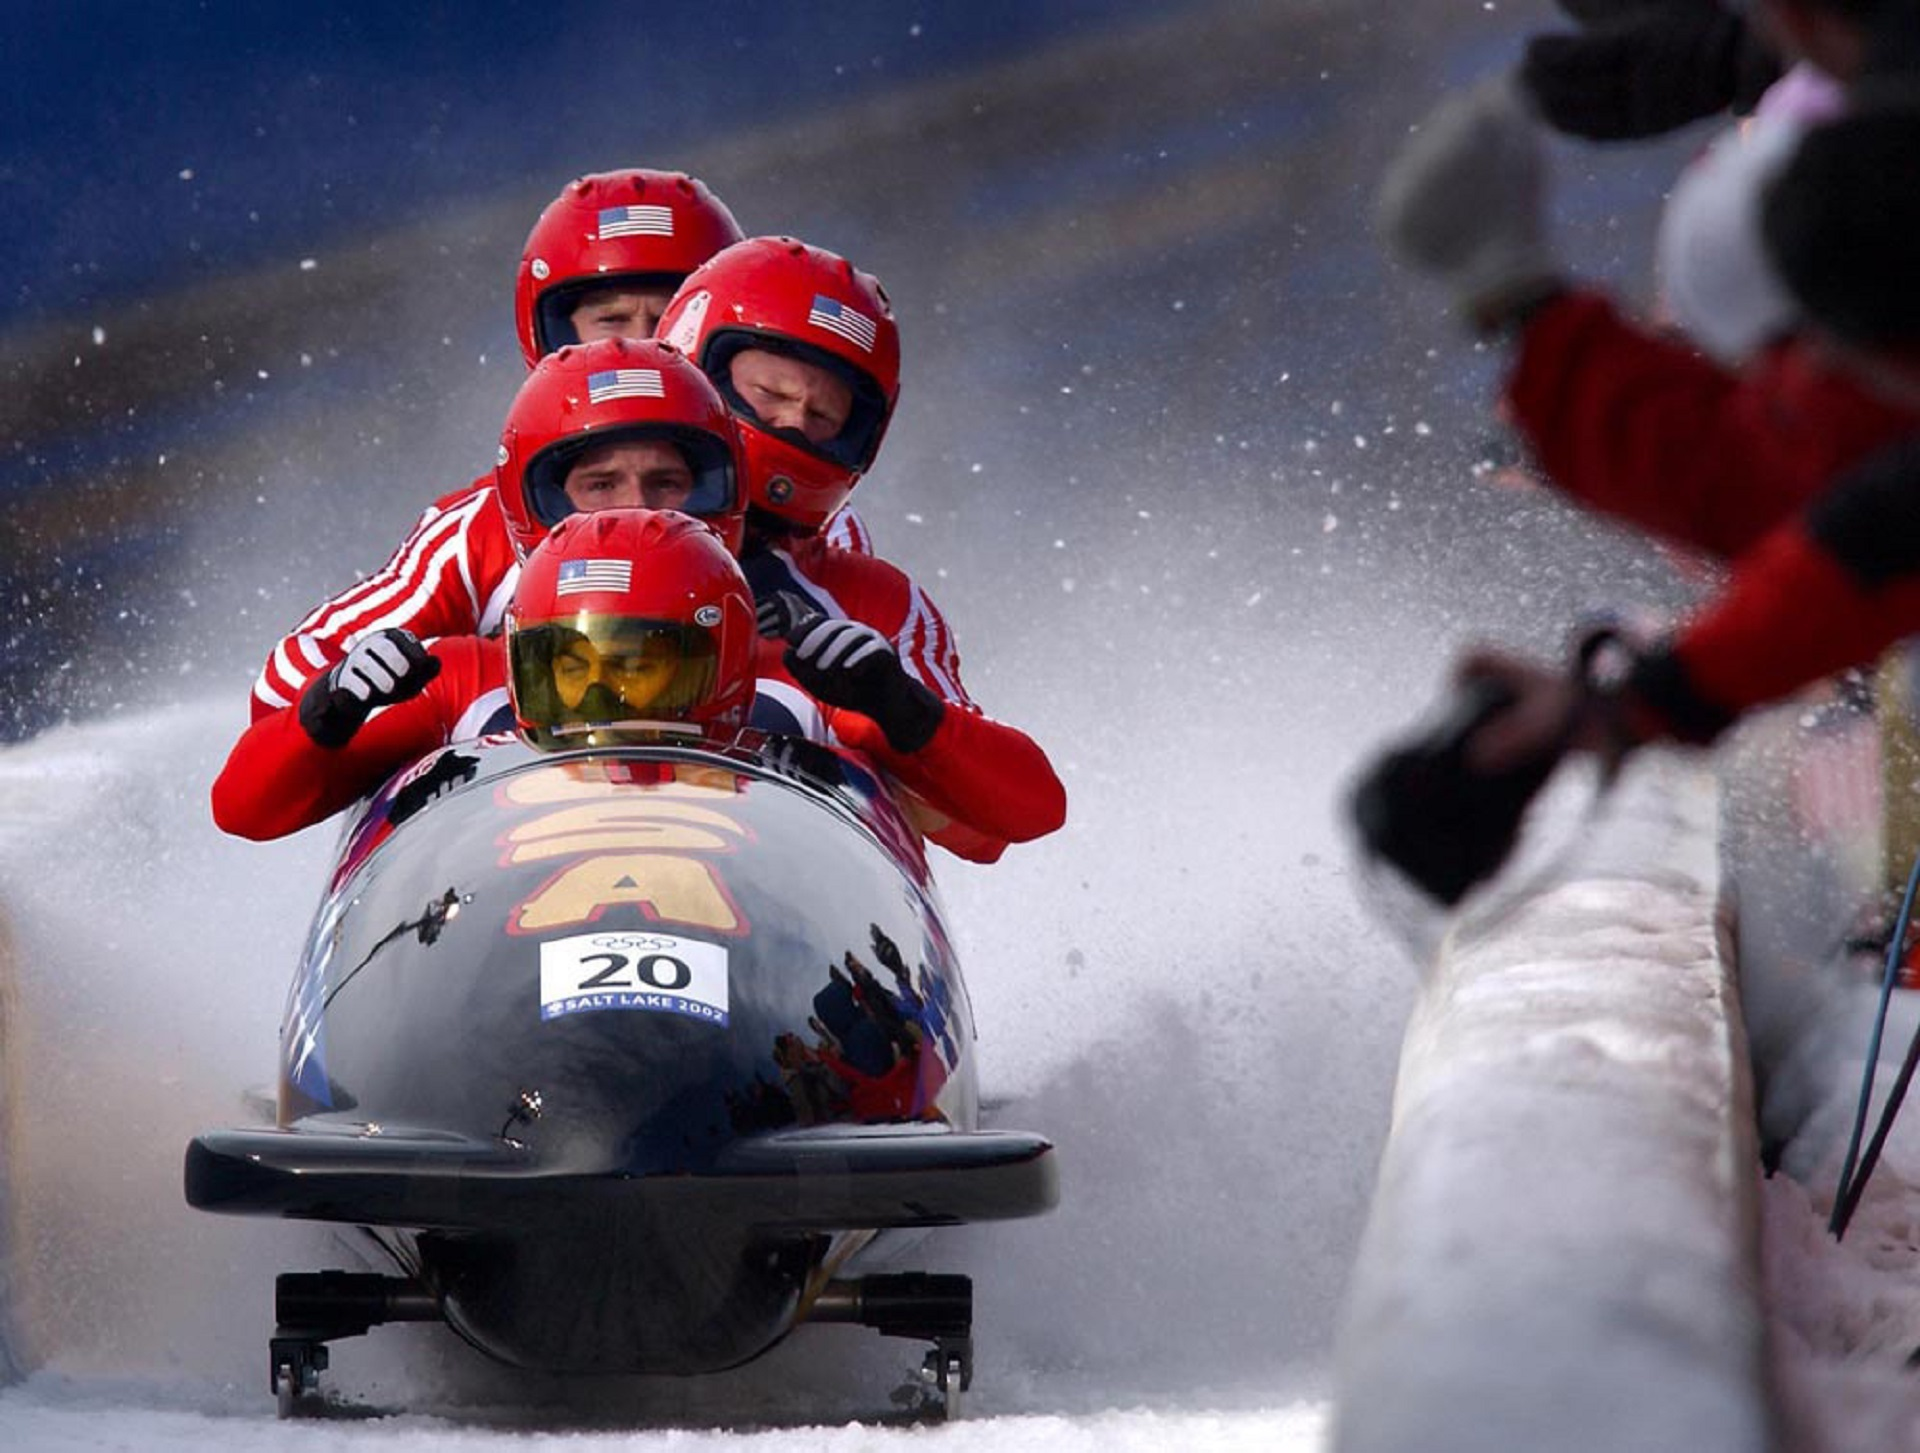 Four Person Riding on Snow Mobile